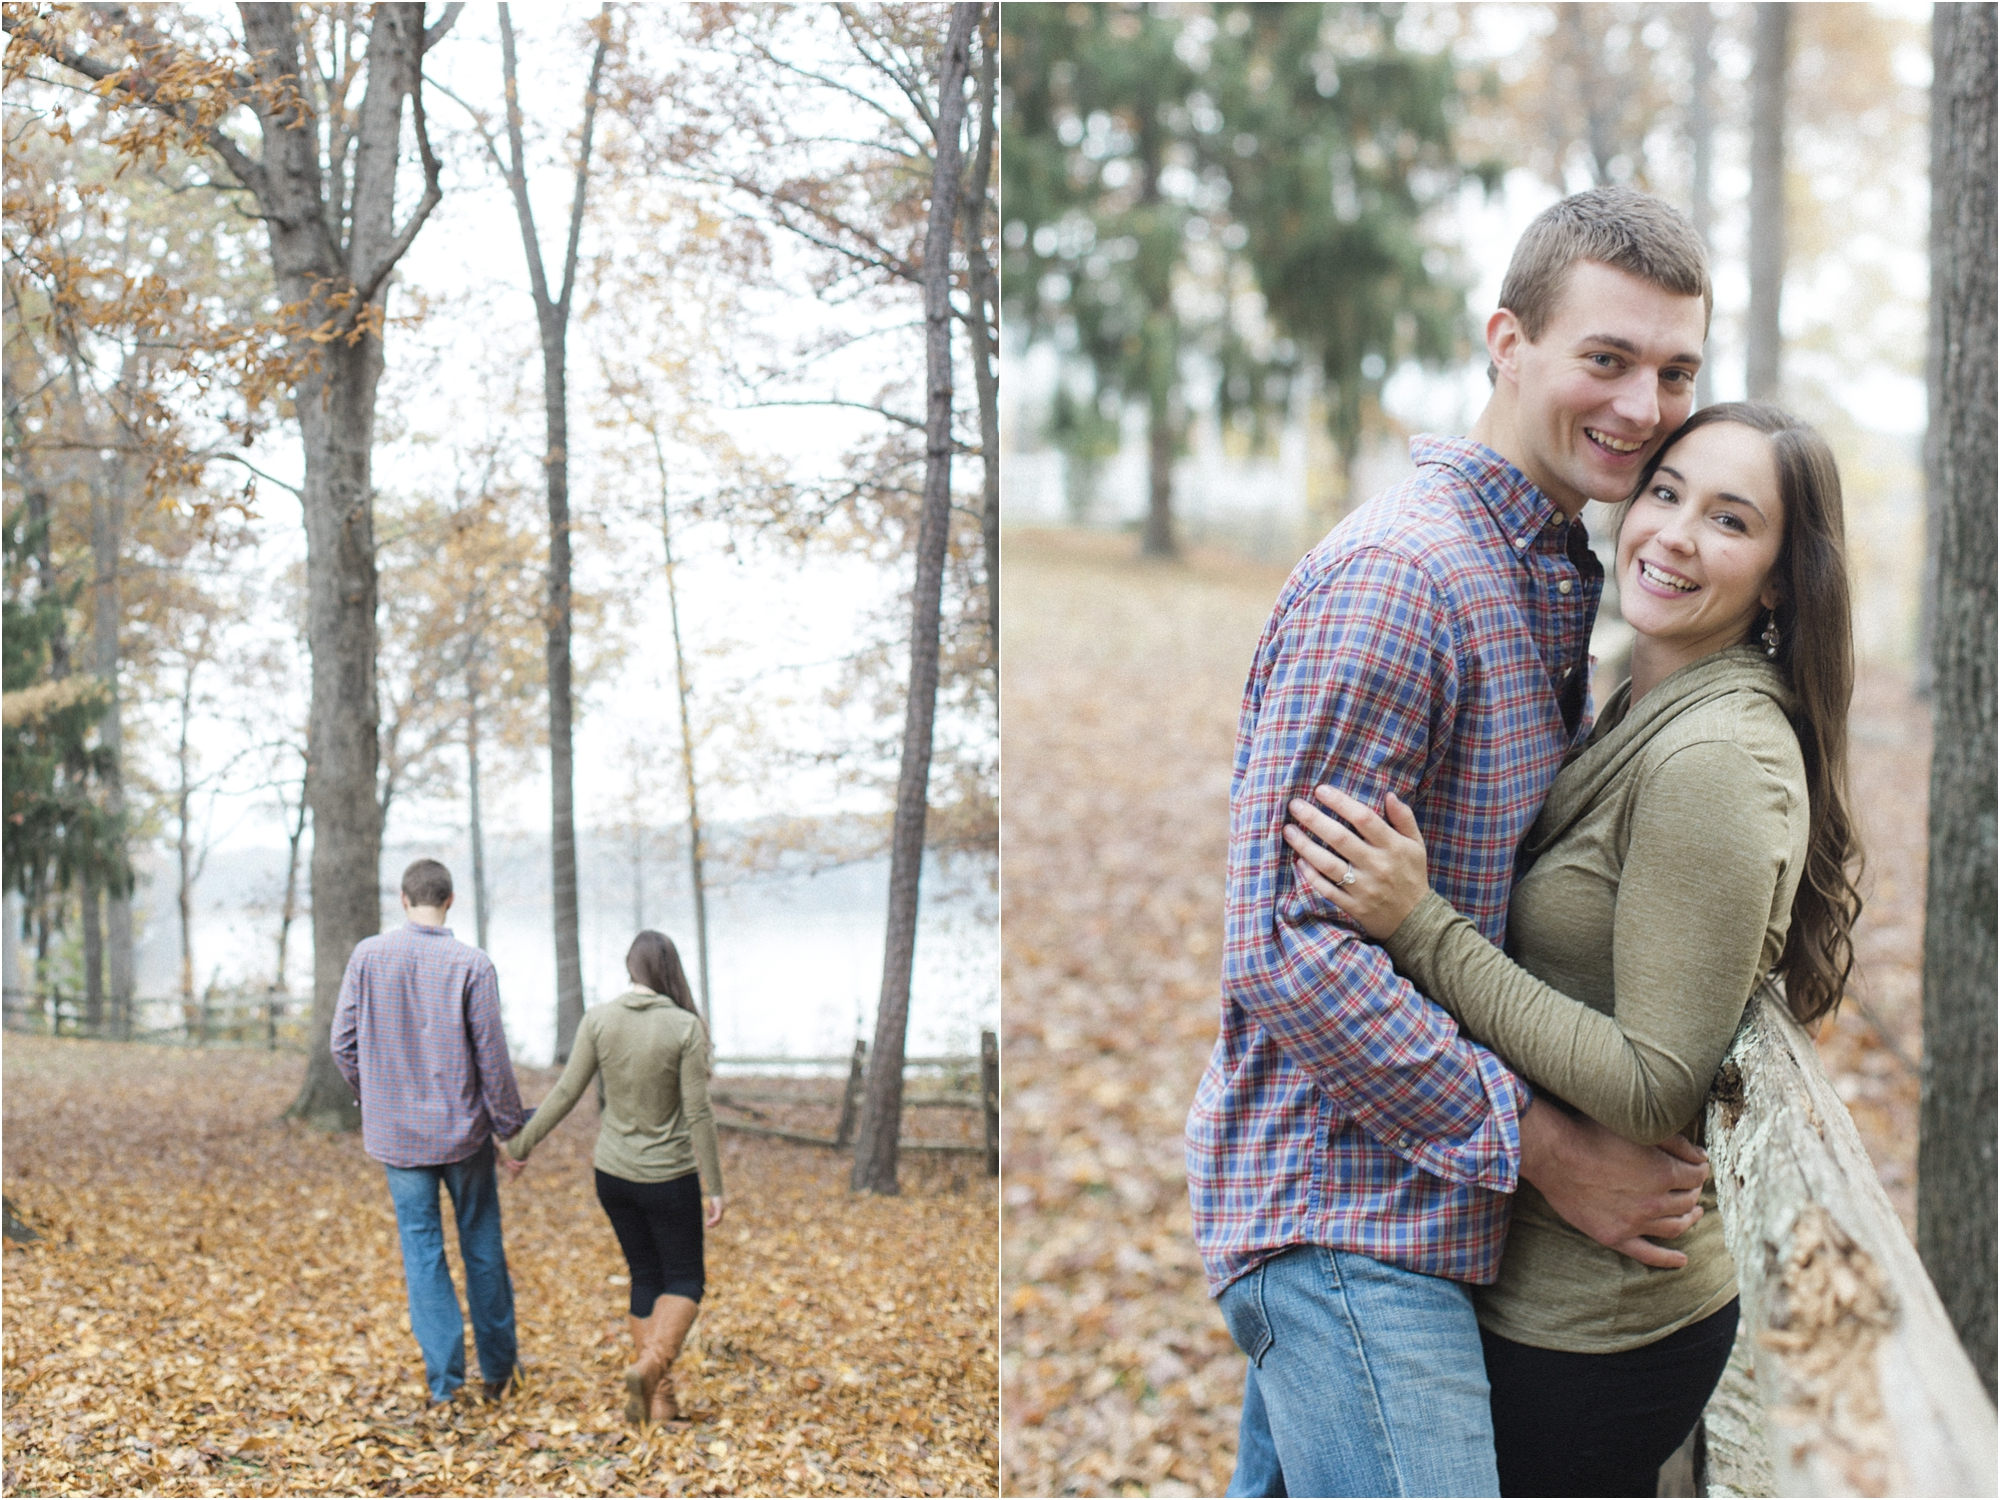 stephanie-yonce-photography-richmond-virginia-woodsey-fall-engagement-session-photos_0010.jpg